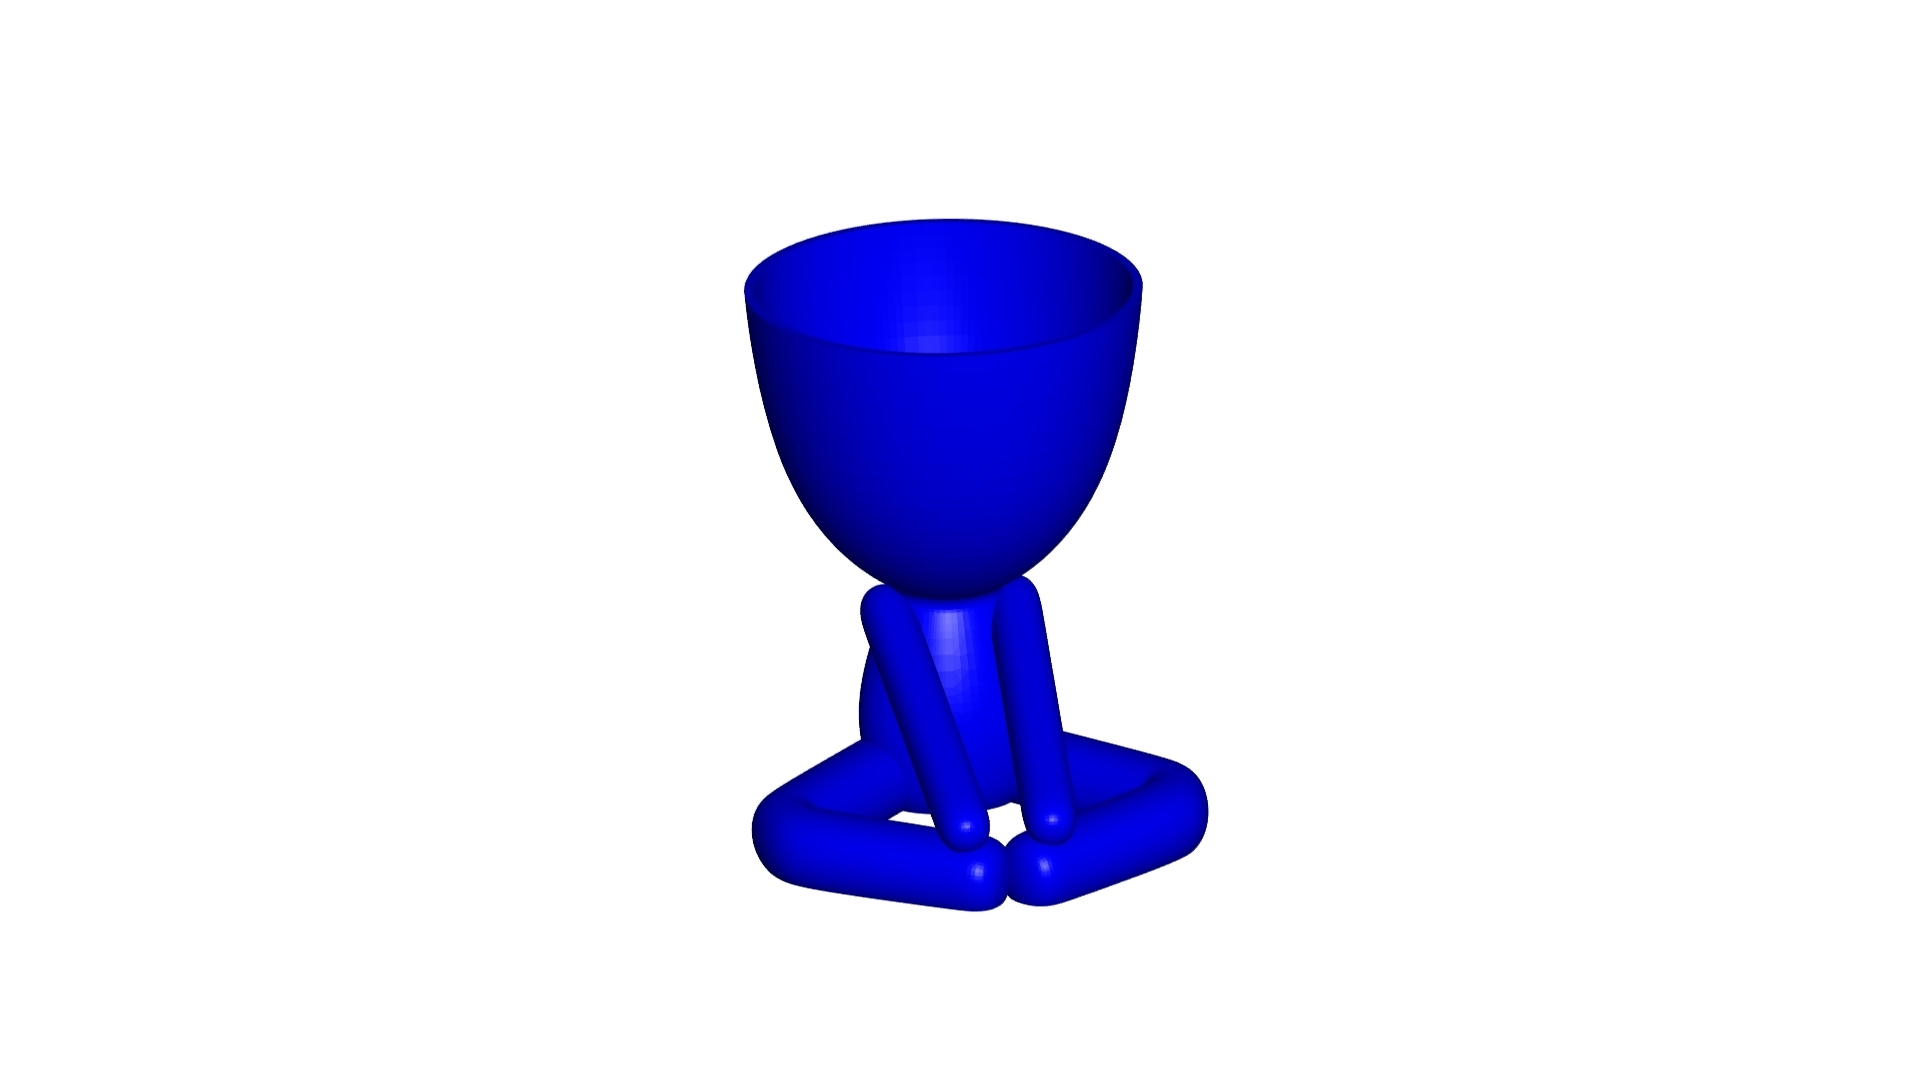 Vaso_12_Azul_1.jpg Download free STL file YOGA ESTIRANDO JARRÓN MACETA ROBERT 12 -  YOGA STRETCHING VASE FLOWERPOT ROBERT 12 • Template to 3D print, PRODUSTL56